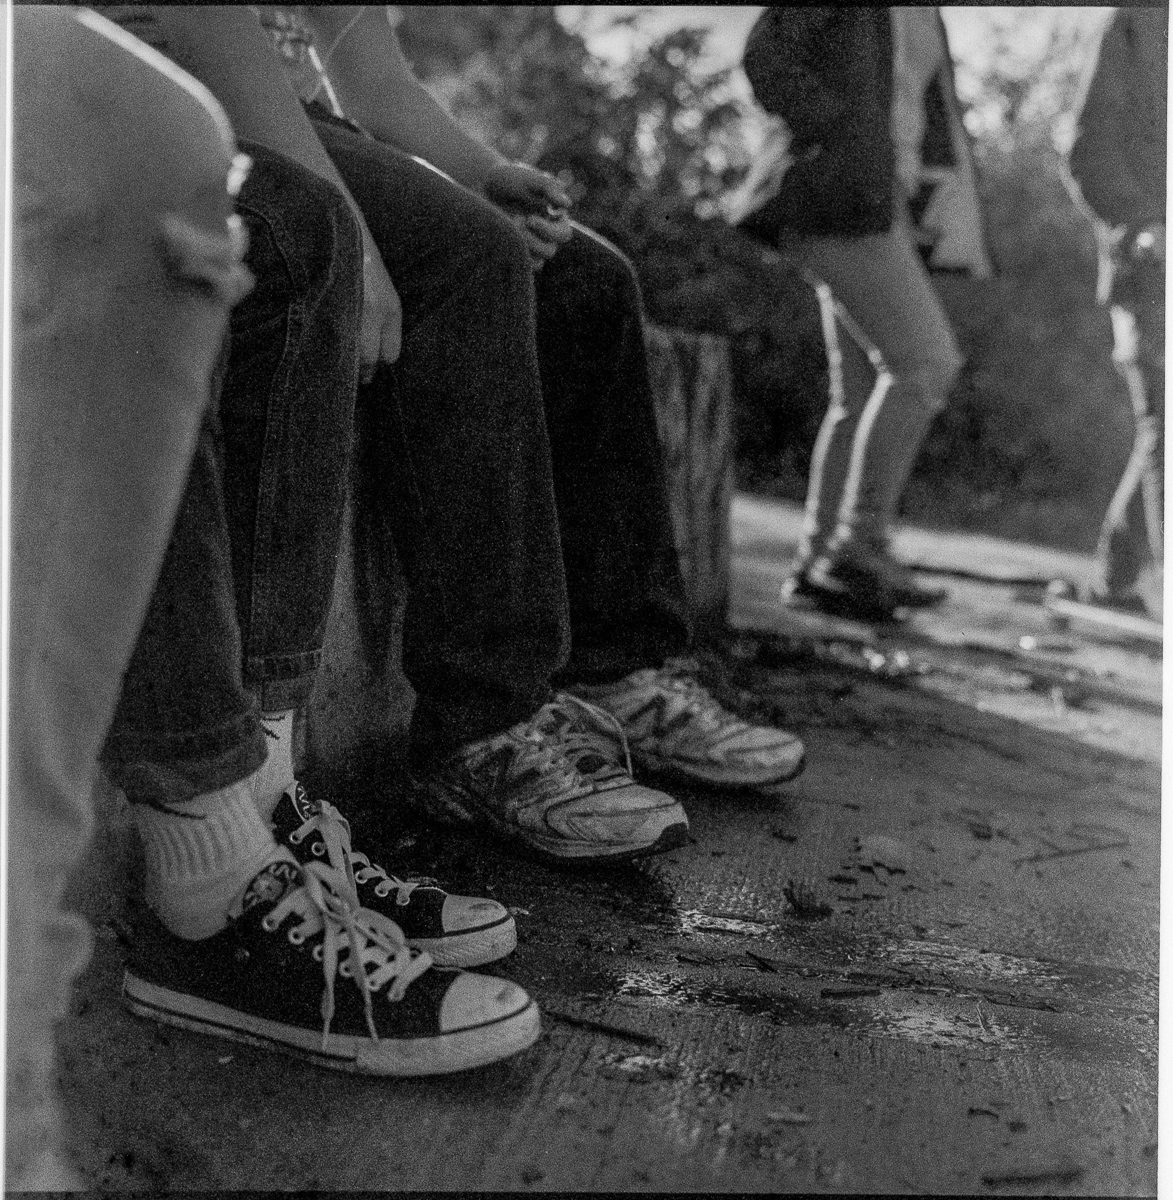 Black and white view of the feet and legs of youths seated while others walk past in the background.